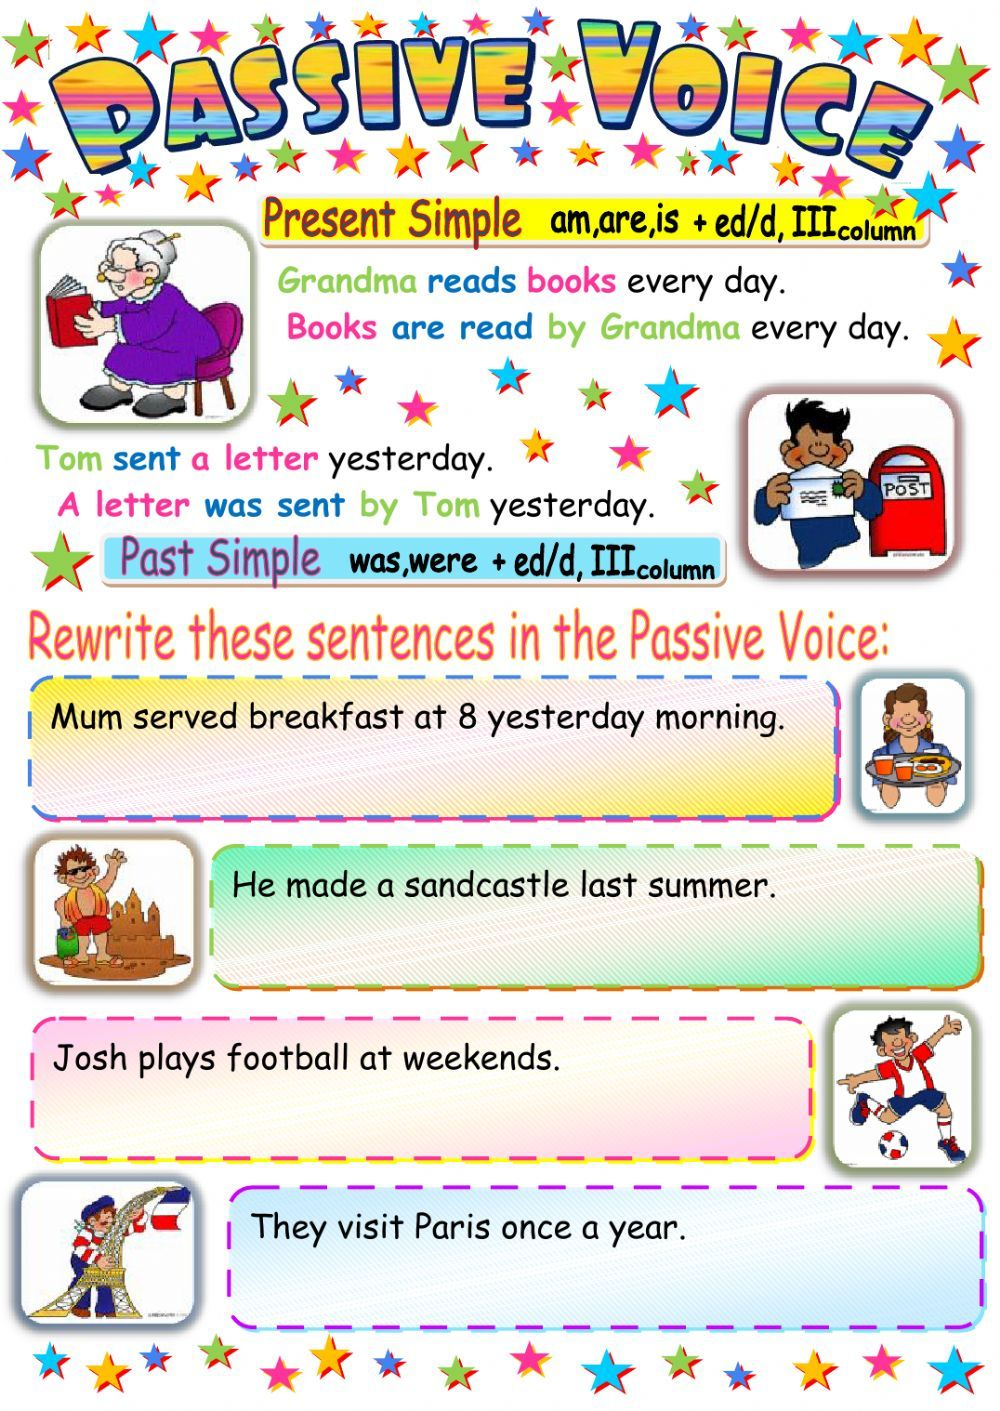 Printable Math Worksheets Passive Voice Present And Past Simple  Interactive Worksheet  Rounding Worksheets For 2nd Grade Excel with Division With Remainders Worksheet Passive Voice Present And Past Simple  Interactive Worksheet Eslgrammar Worksheetspresents Finding Area And Perimeter Of Irregular Shapes Worksheets Pdf